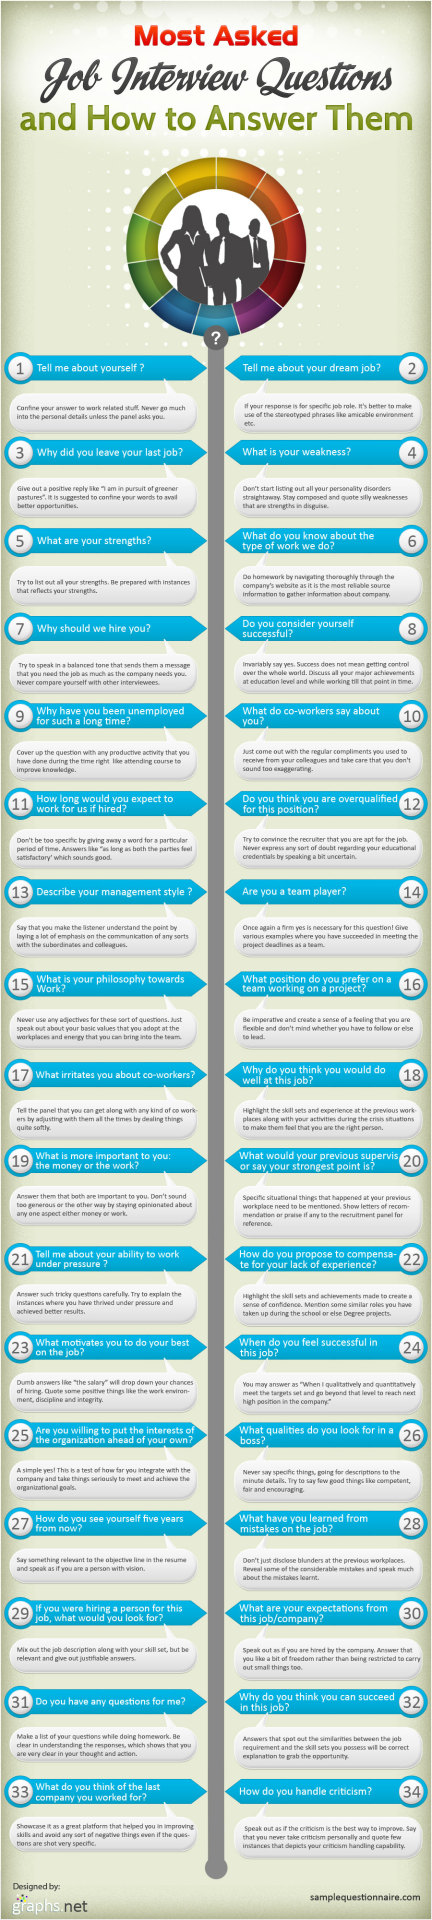 "careeralley:  Most Asked Job Interview Questions and How to Answer Them View Post  A VERY thorough list…try this link if clicking on the picture does not take you to the page with the full-sized image (http://careeralleyblog.wordpress.com/2013/03/16/most-asked-job-interview-questions-and-how-to-answer-them/). Have any of you been stumped by questions in interviews? For me it was always those strange ""If you were an animal, what kind of animal would you be?"" ones. Back when I was in Kentucky, I always said a thoroughbred horse! But, seriously though, human is ideal because I can purchase, unscrew and consume as many jars of Nutella as I please (for which, the limit does not exist)!"